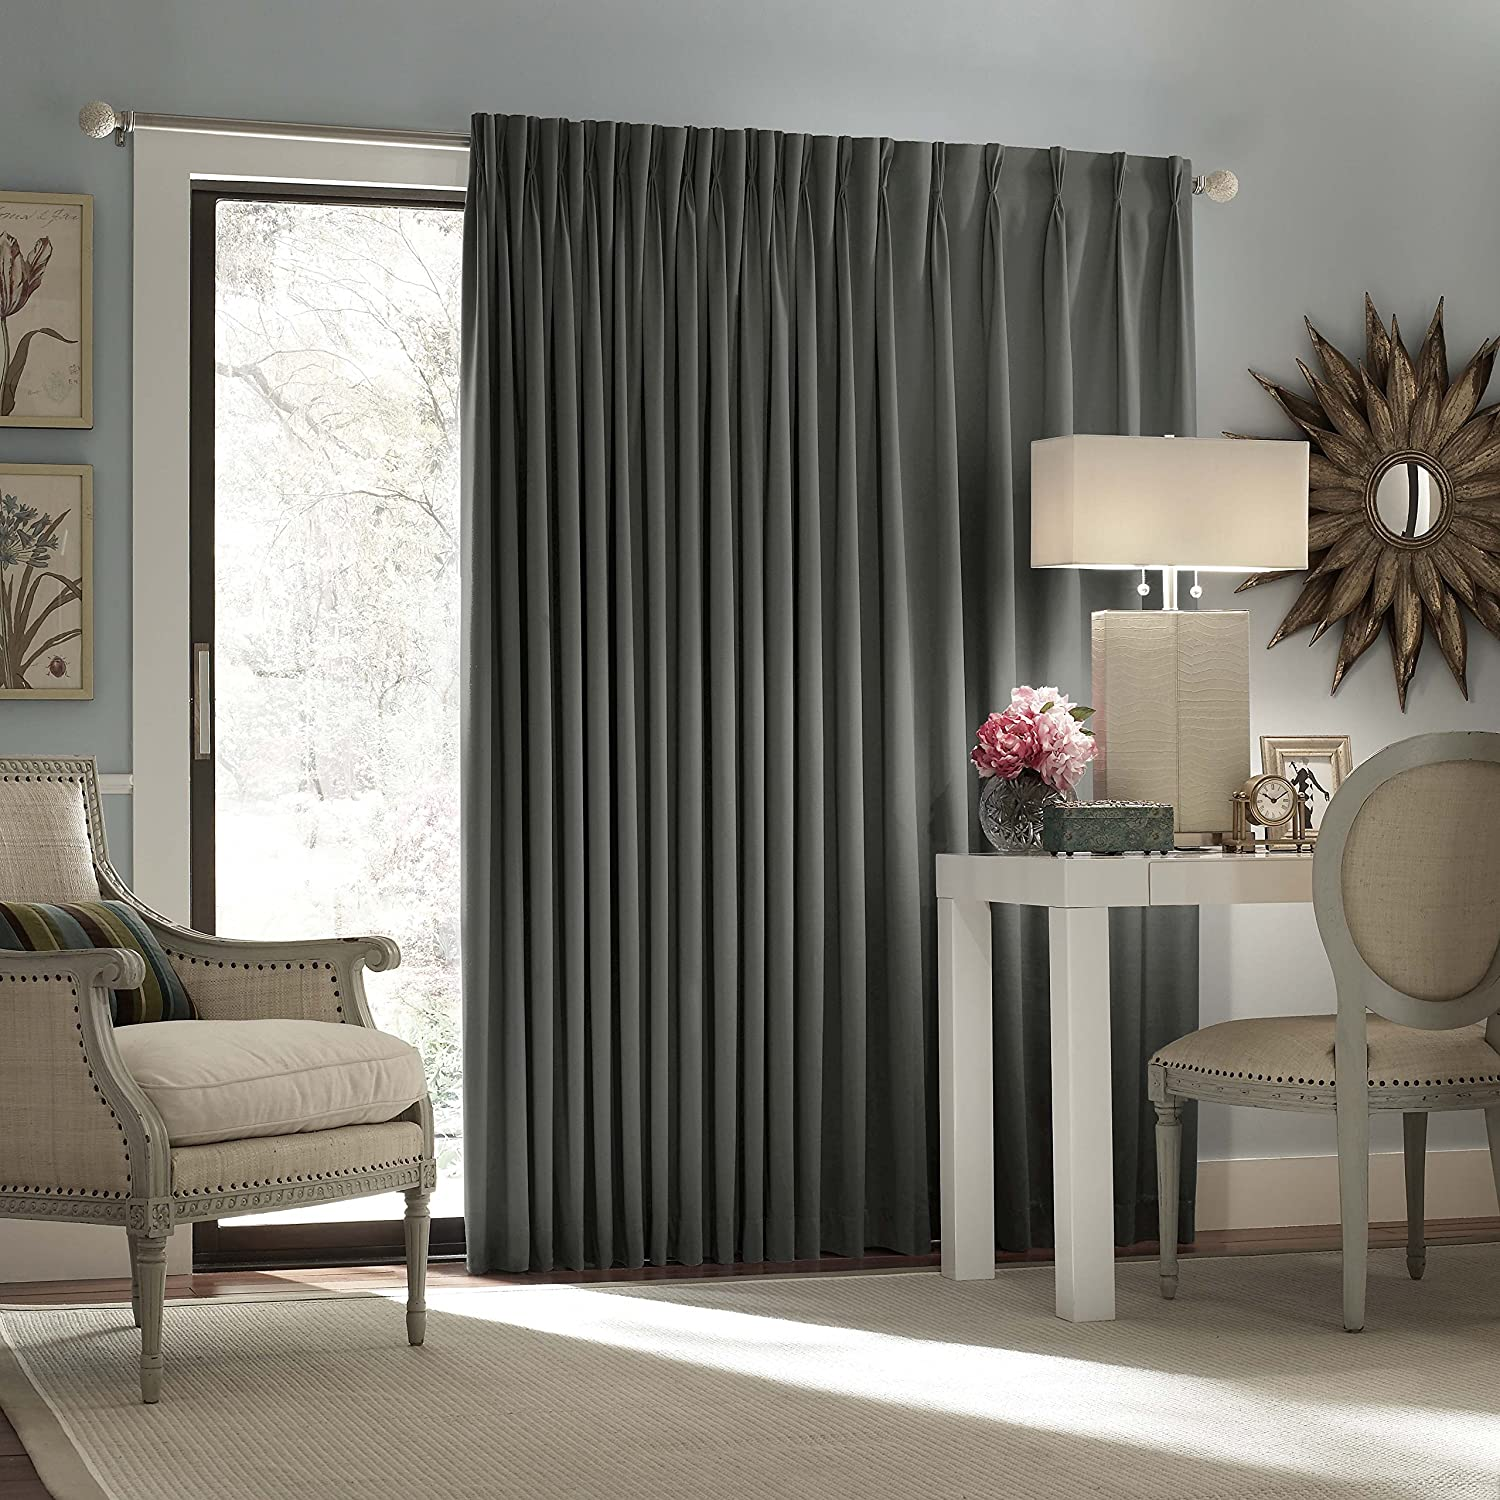 High Quality Amazon.com: Eclipse Thermal Blackout Patio Door Curtain Panel, 100 Inch X  84 Inch, Charcoal: Home U0026 Kitchen